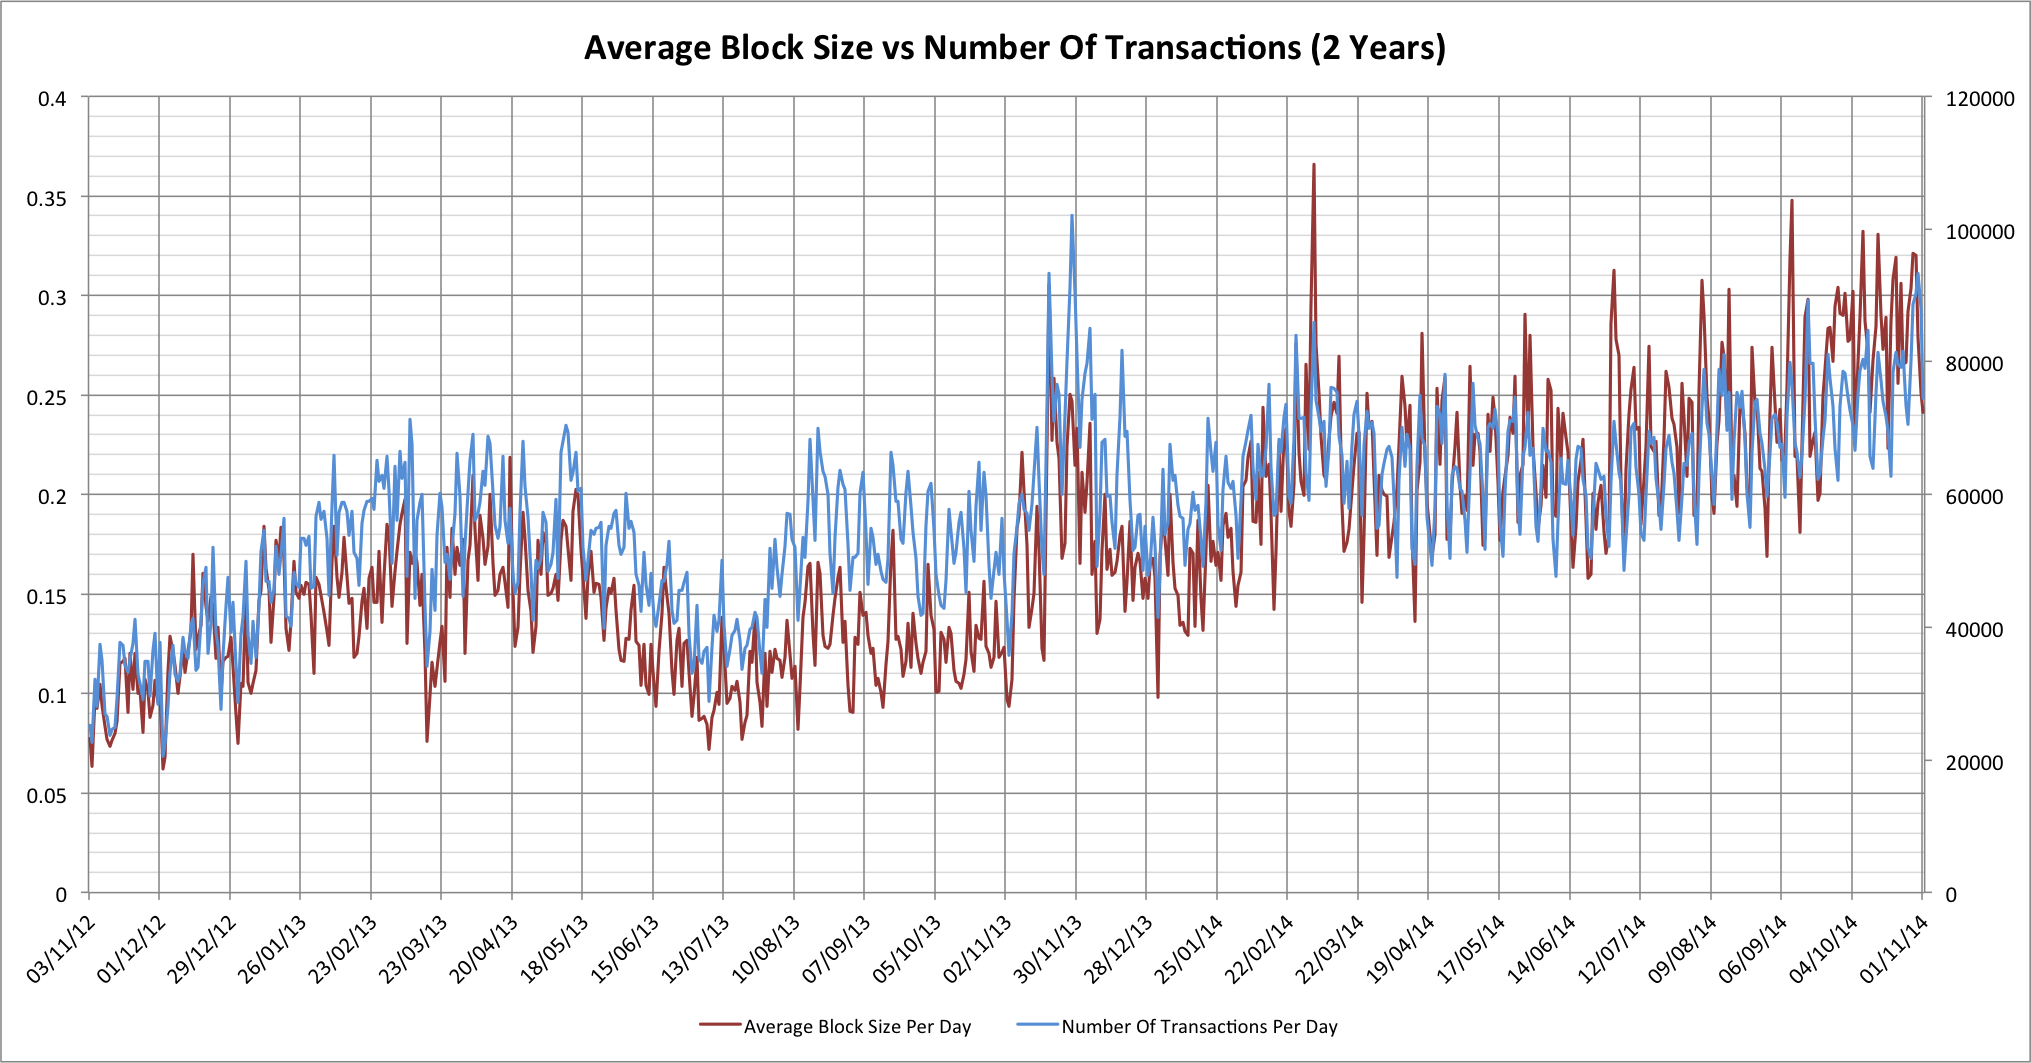 blksize-vs-transactions